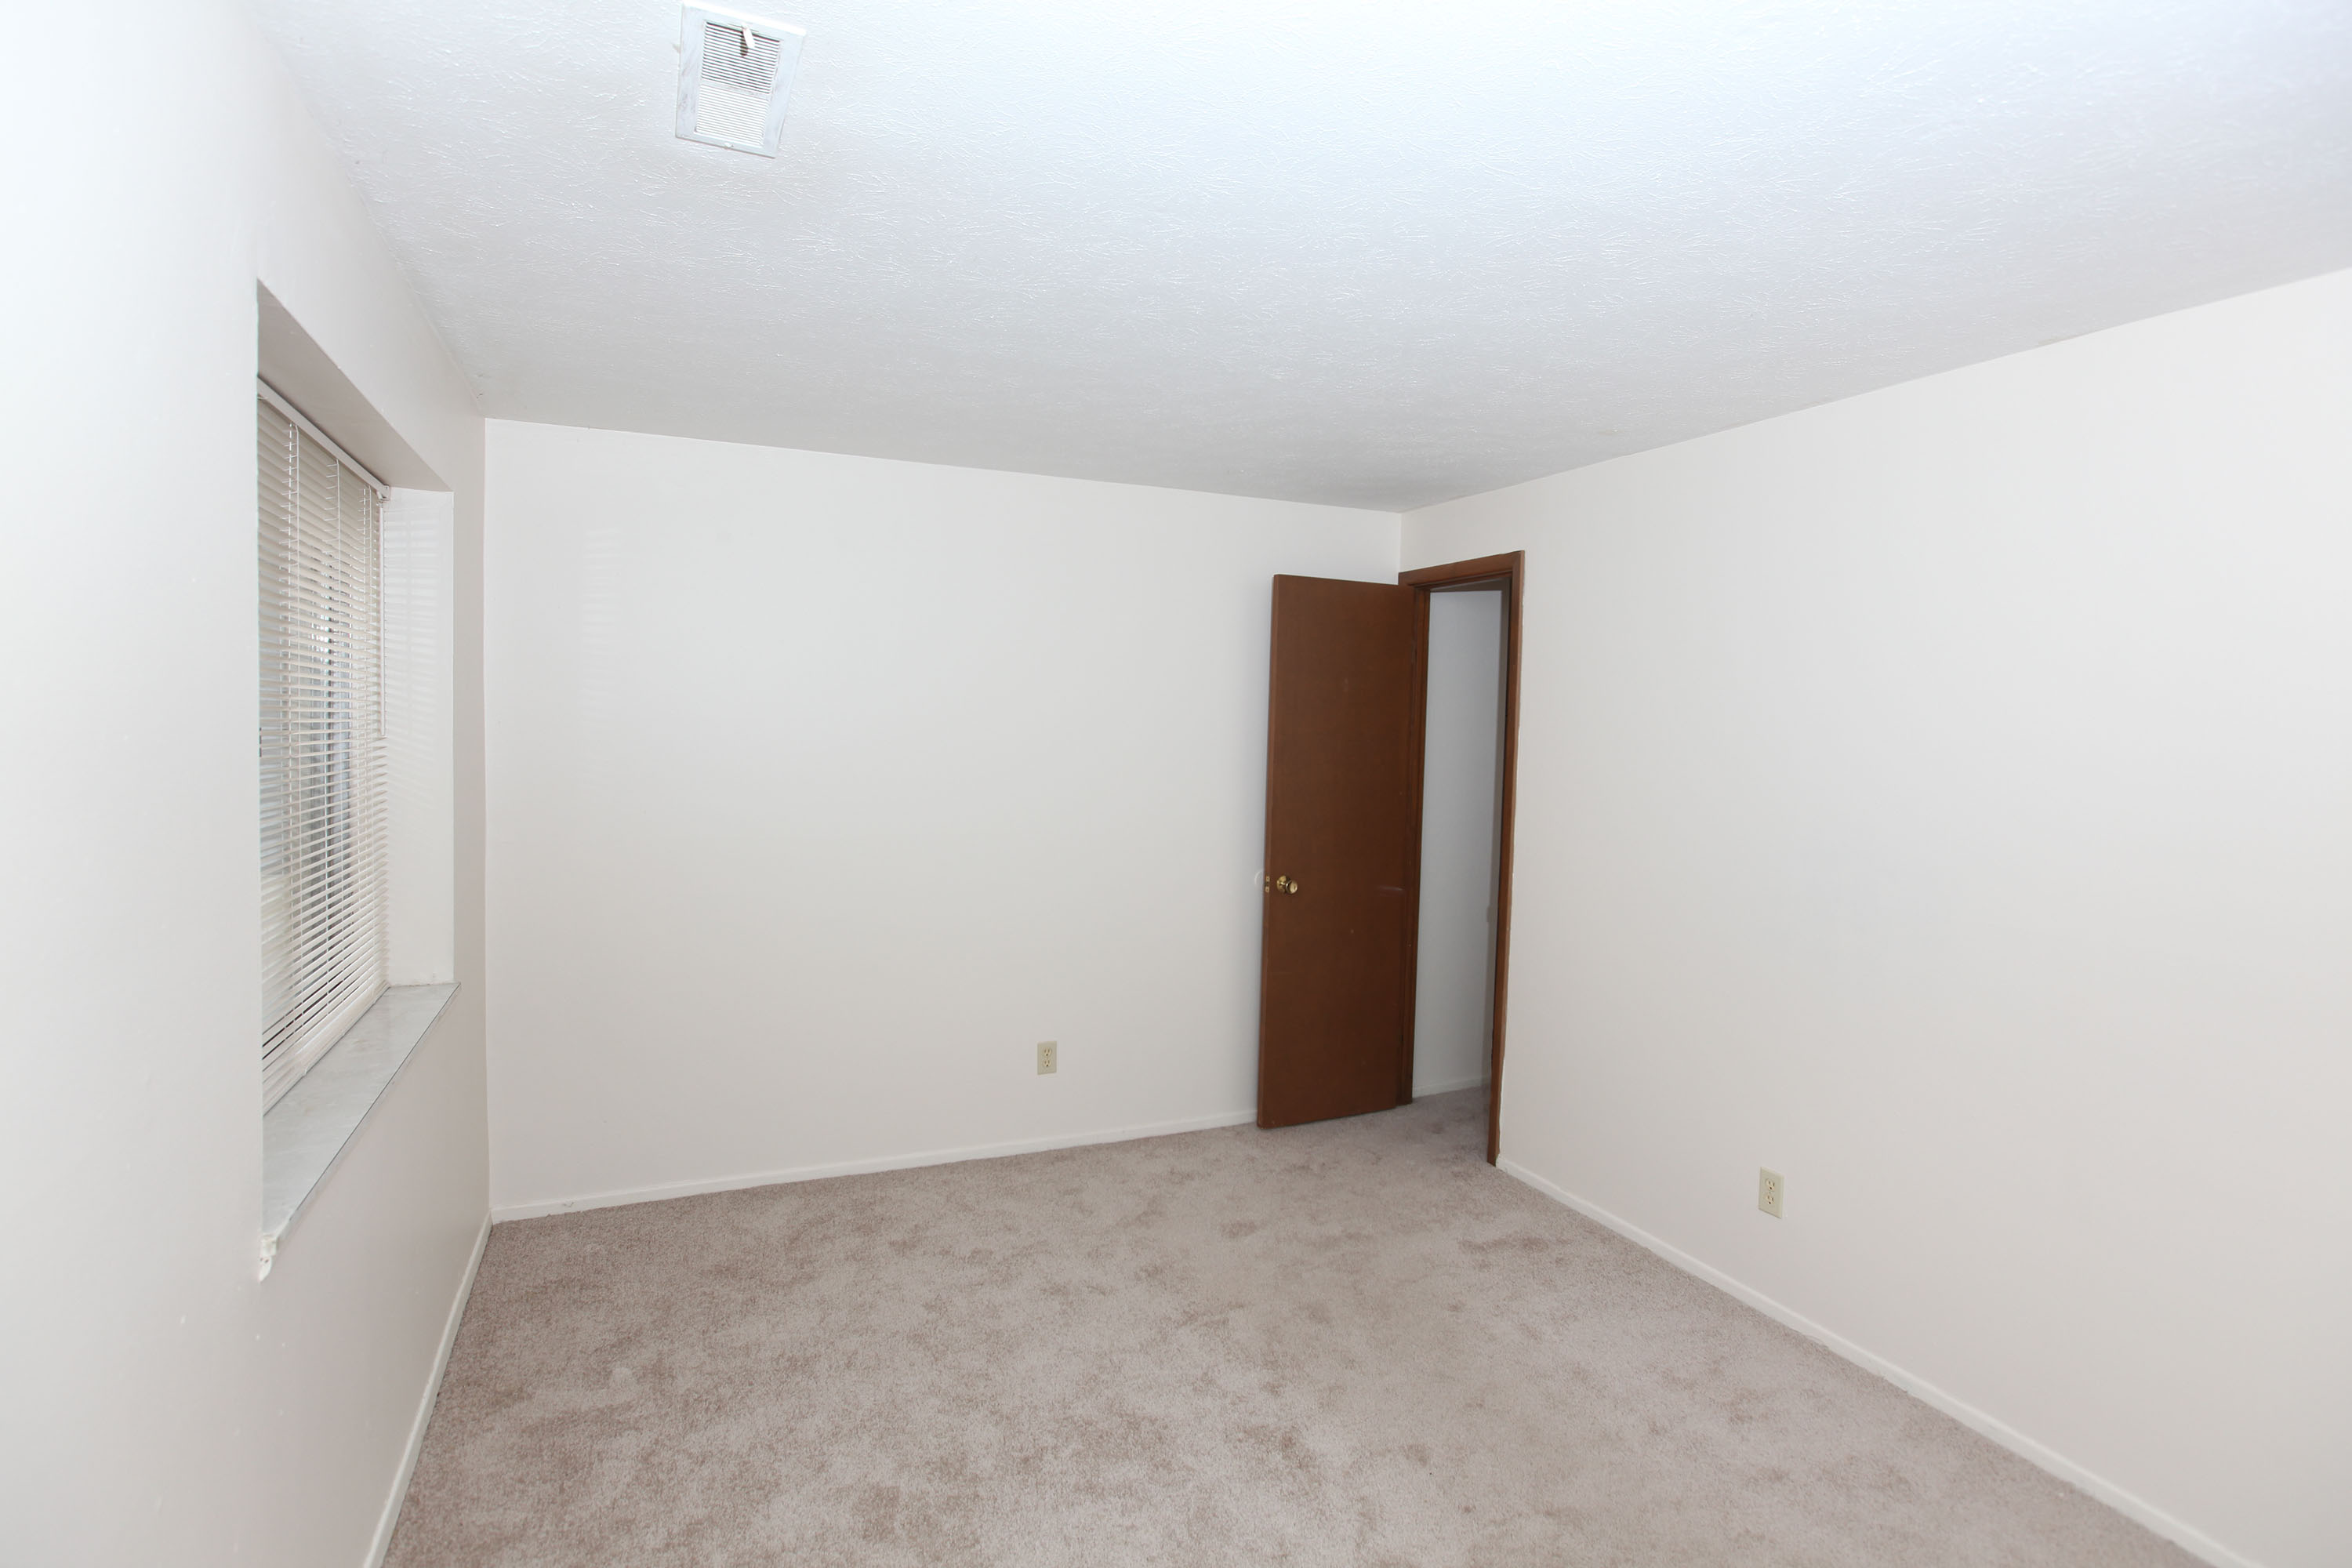 1C Bedroom at the Greenridge on Euclid Apartments in Euclid, OH